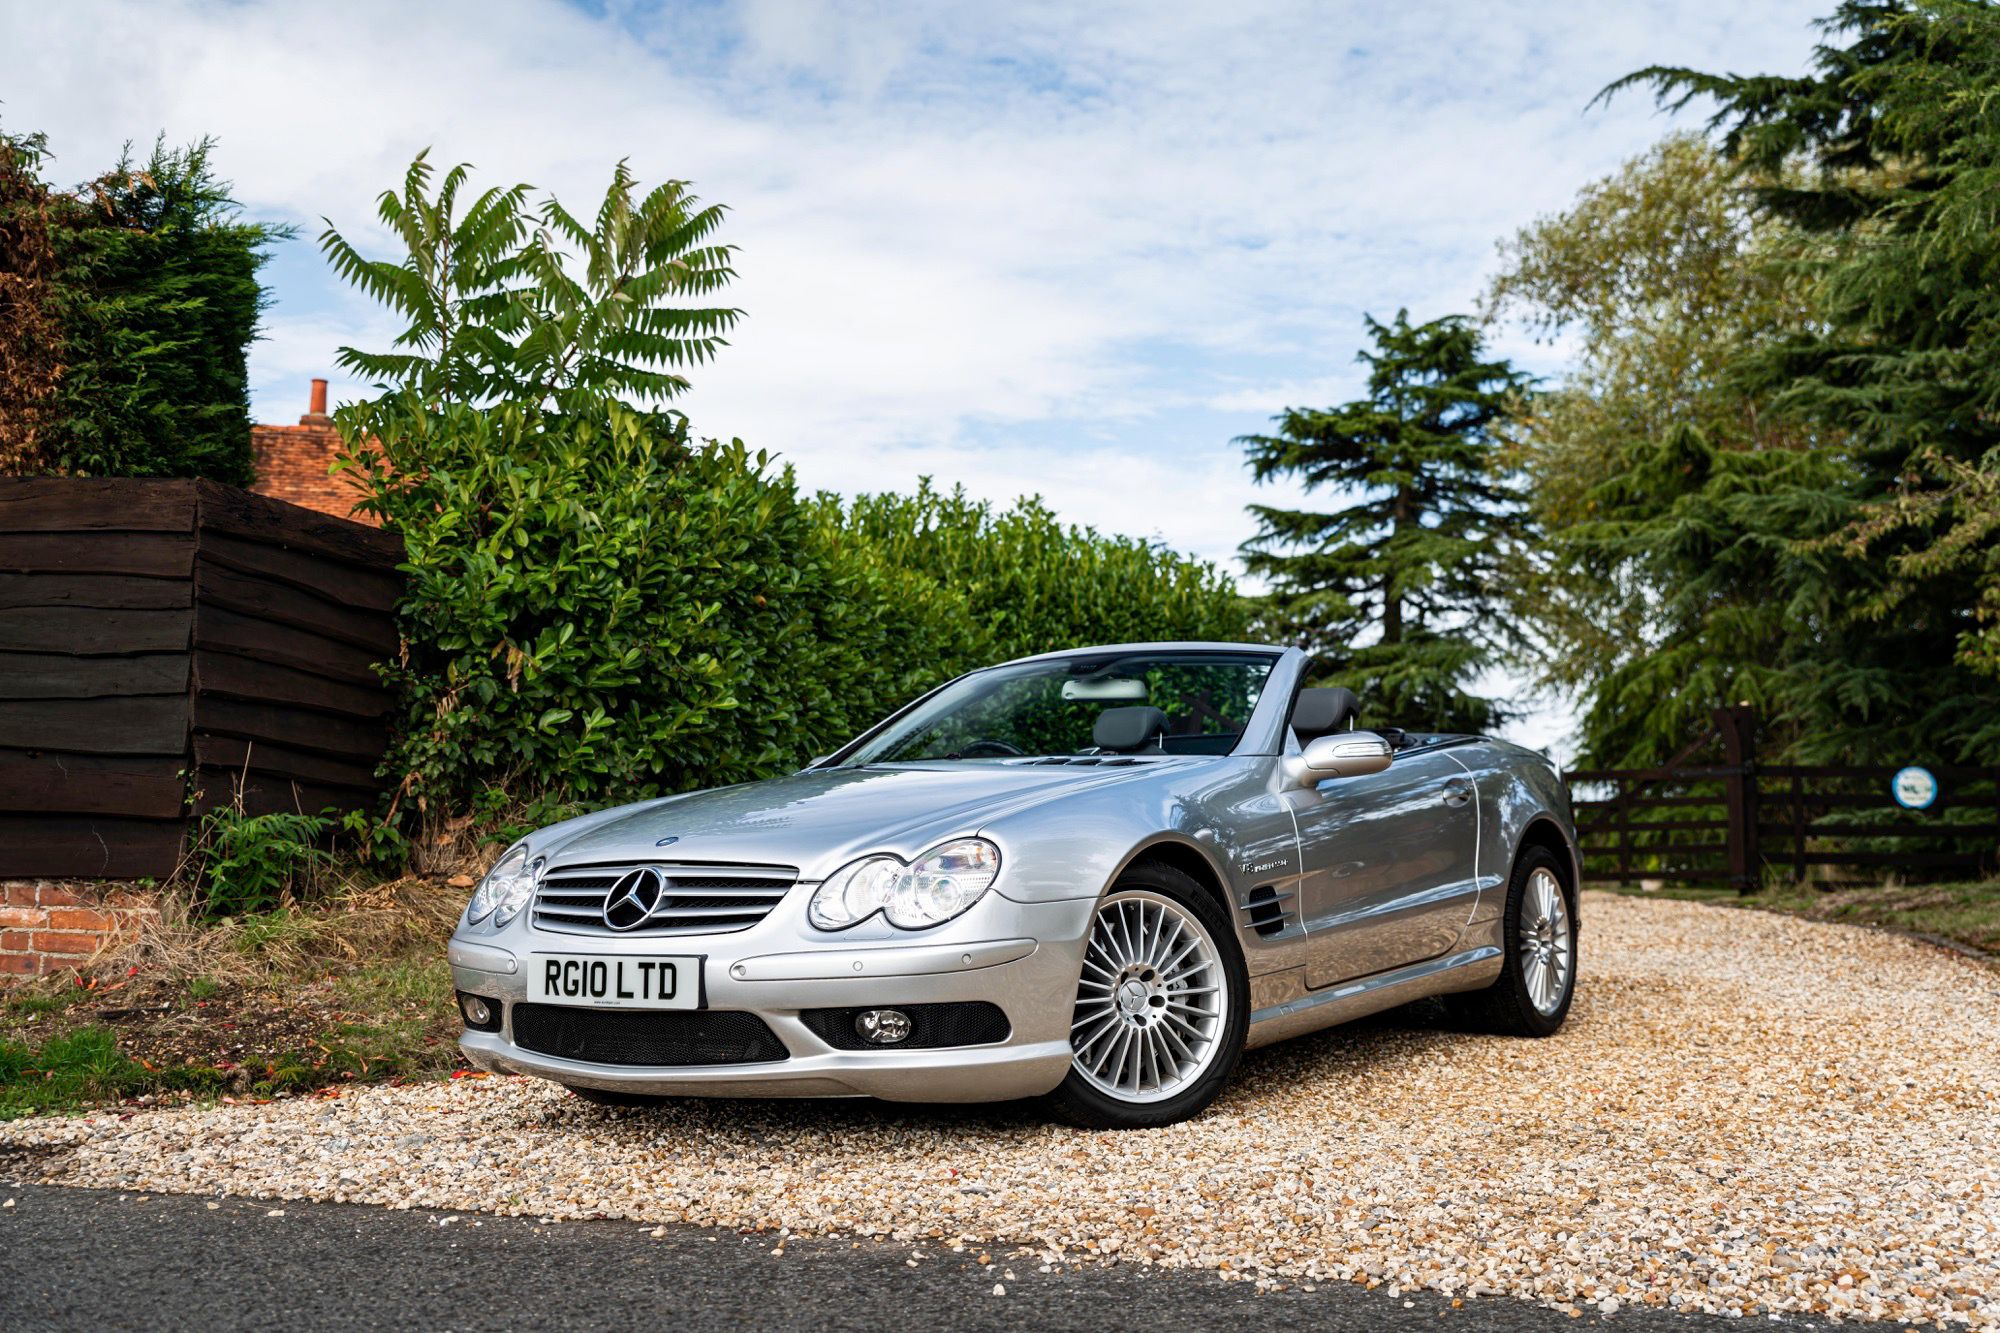 Impeccable Supercharged AMG Rocketship comes into stock